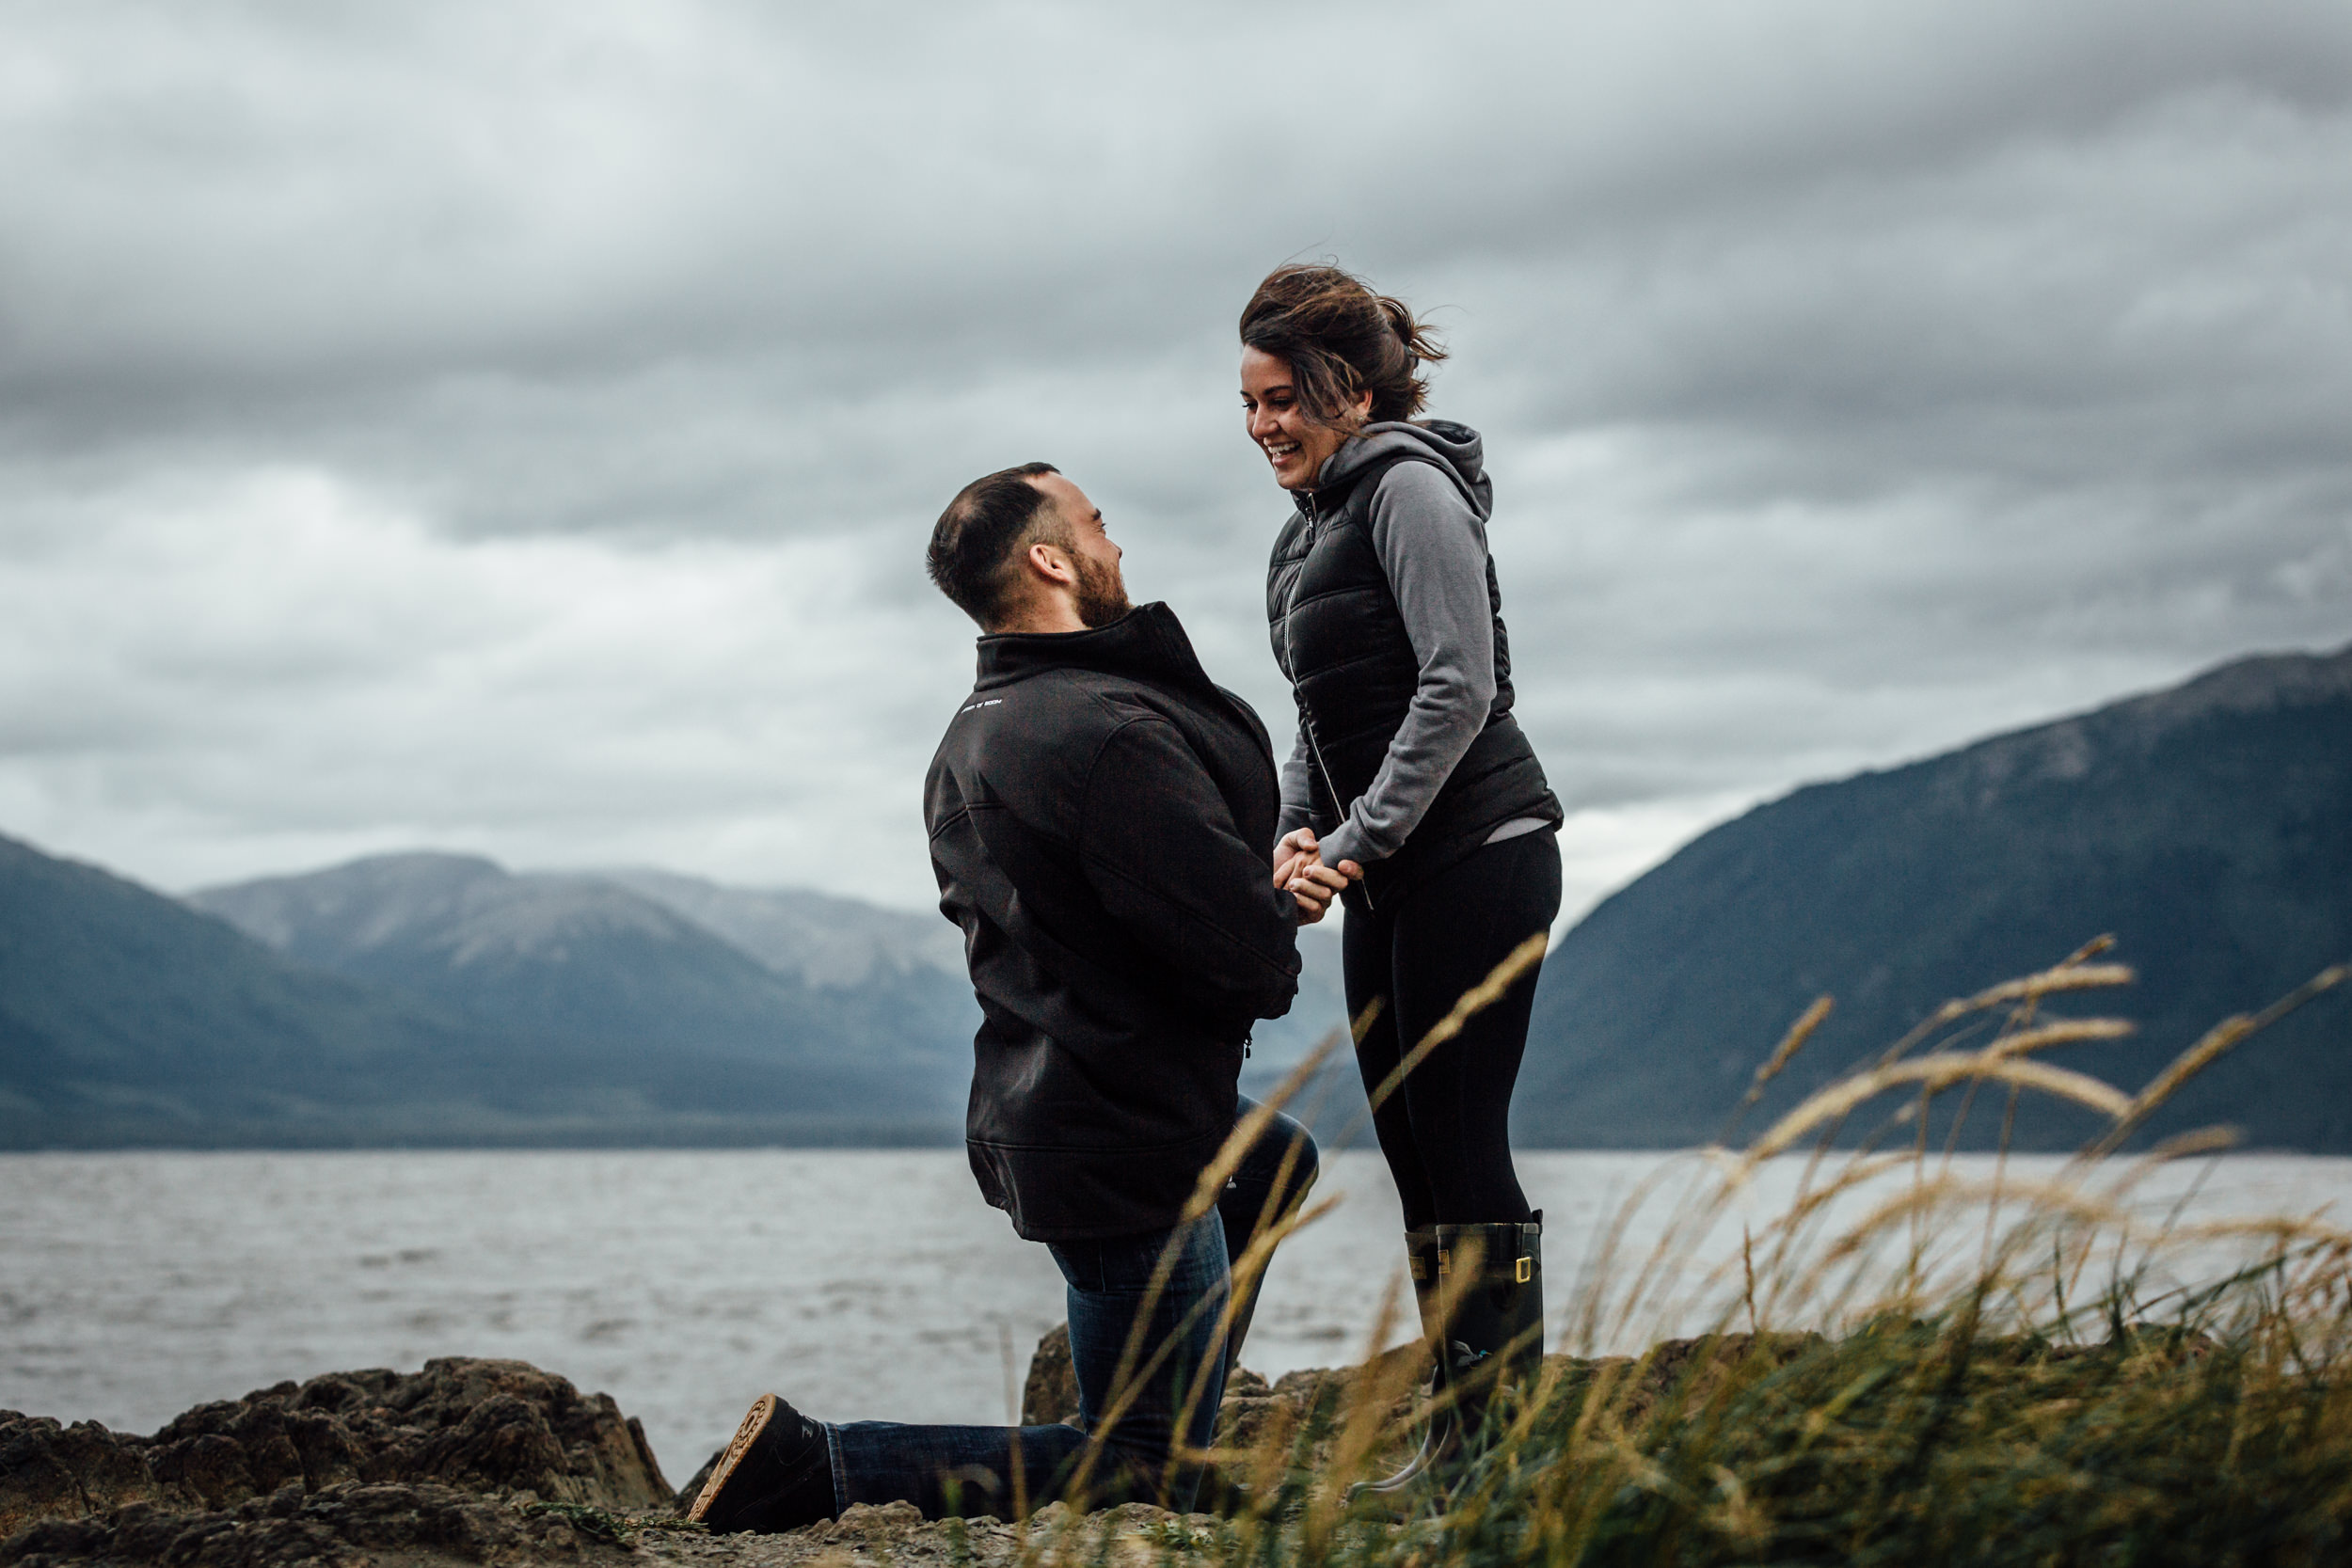 Surprise Anchorage wedding proposal